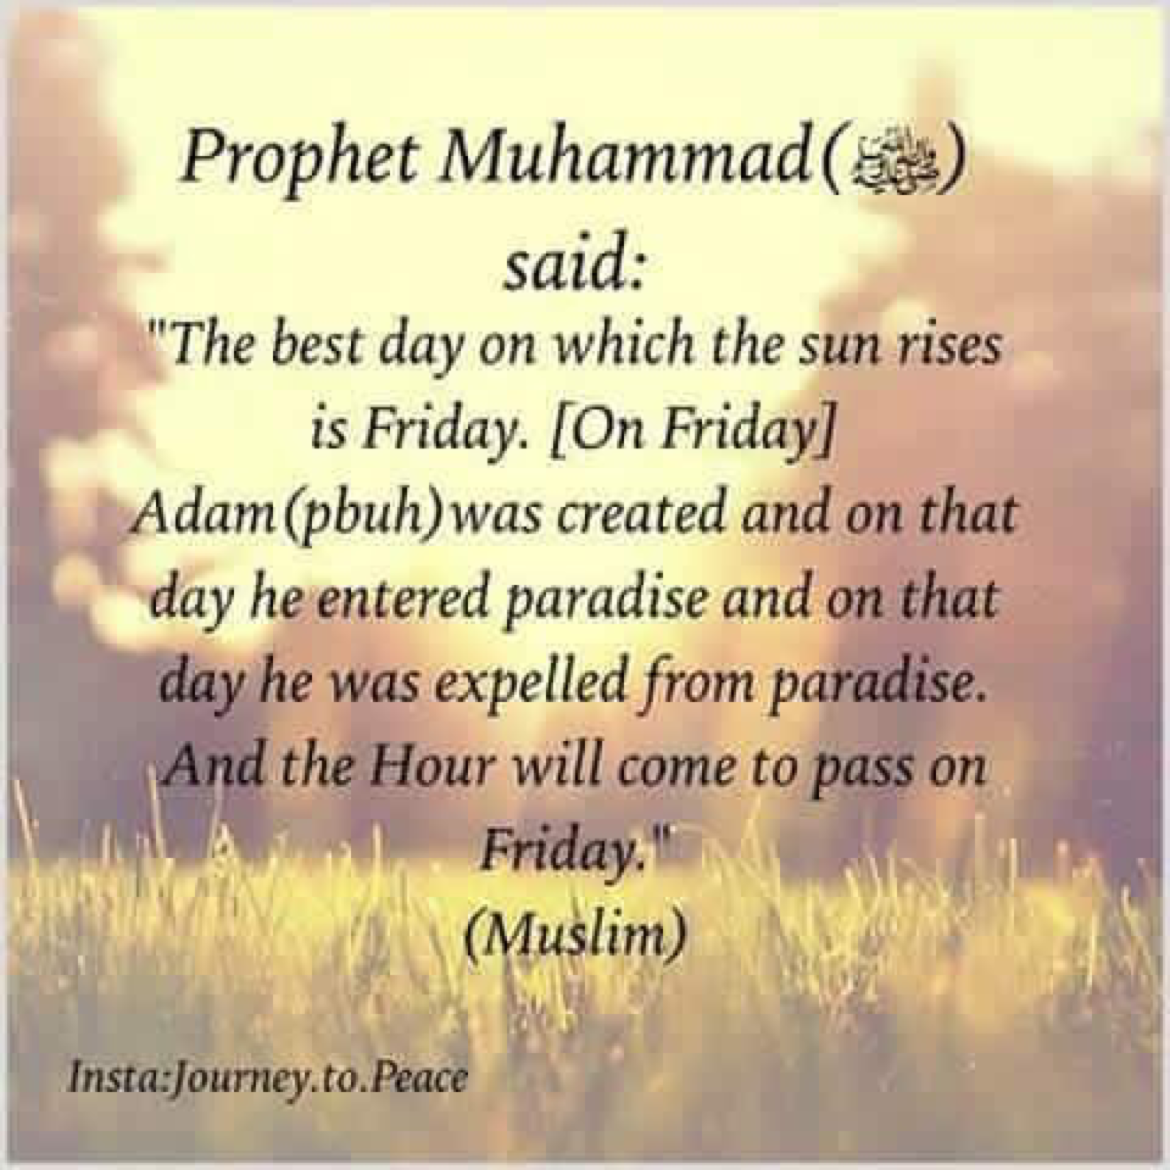 May your jumah be blessed tinydreamz pinterest explore islamic messages islamic prayer and more kristyandbryce Choice Image